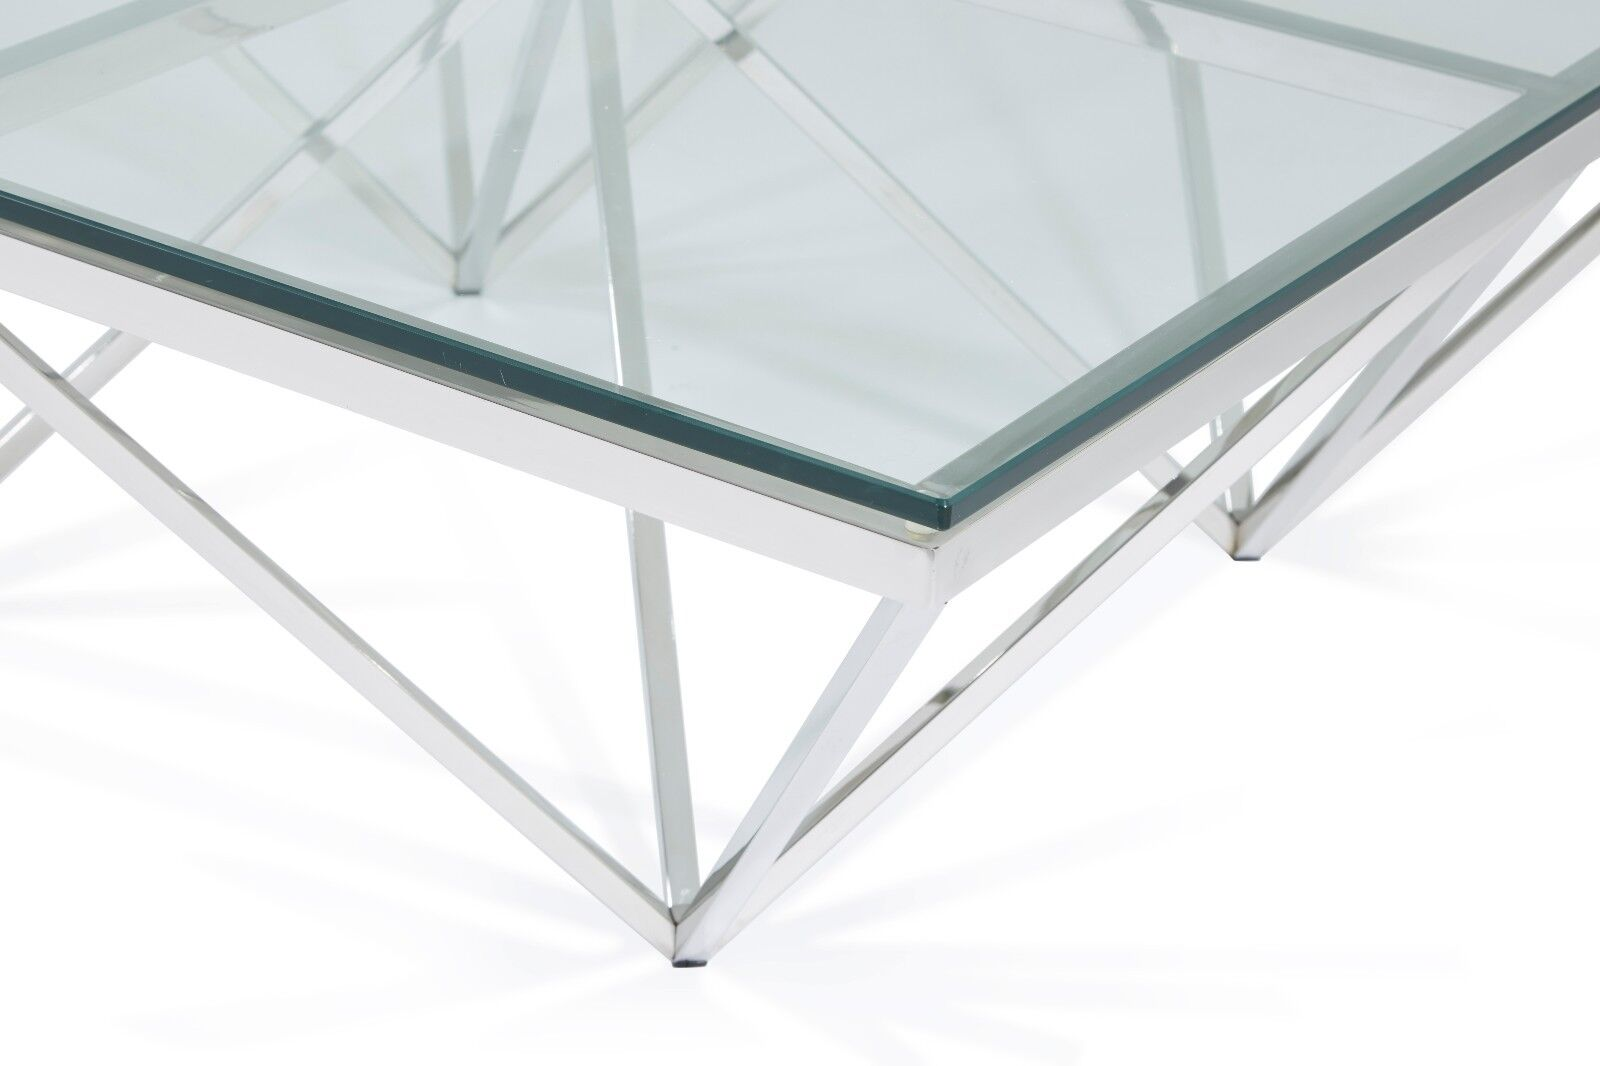 Giza Modern Square Glass Coffee Table In Stainless Steel Frame Star Design